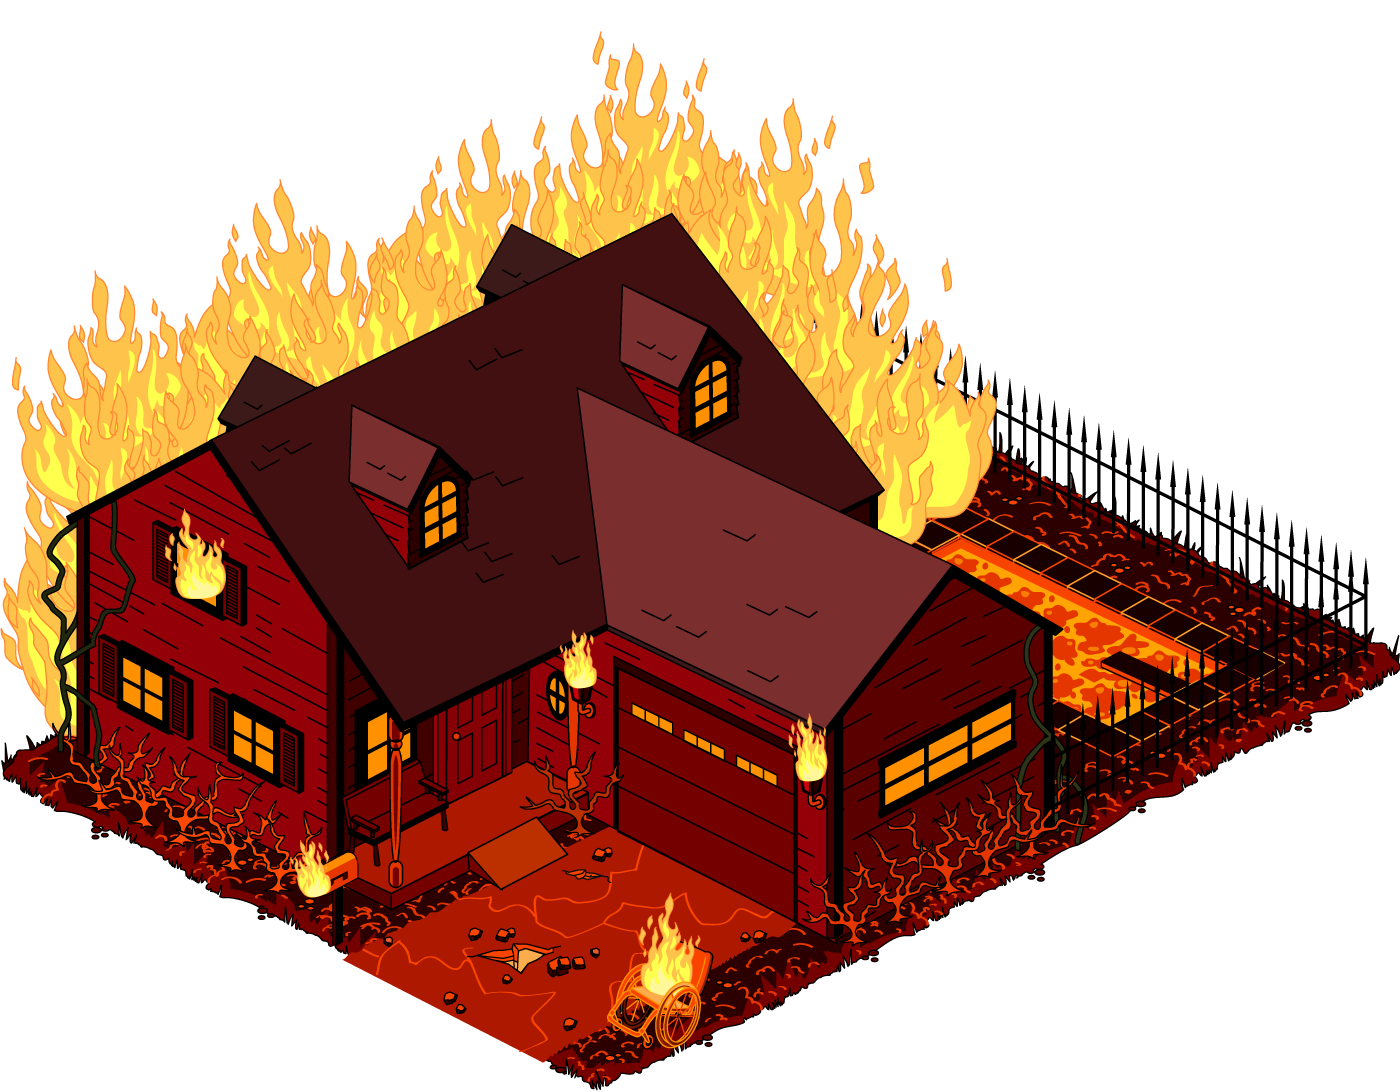 Burnt down house clipart image black and white PNG House On Fire Transparent House On Fire.PNG Images. | PlusPNG image black and white